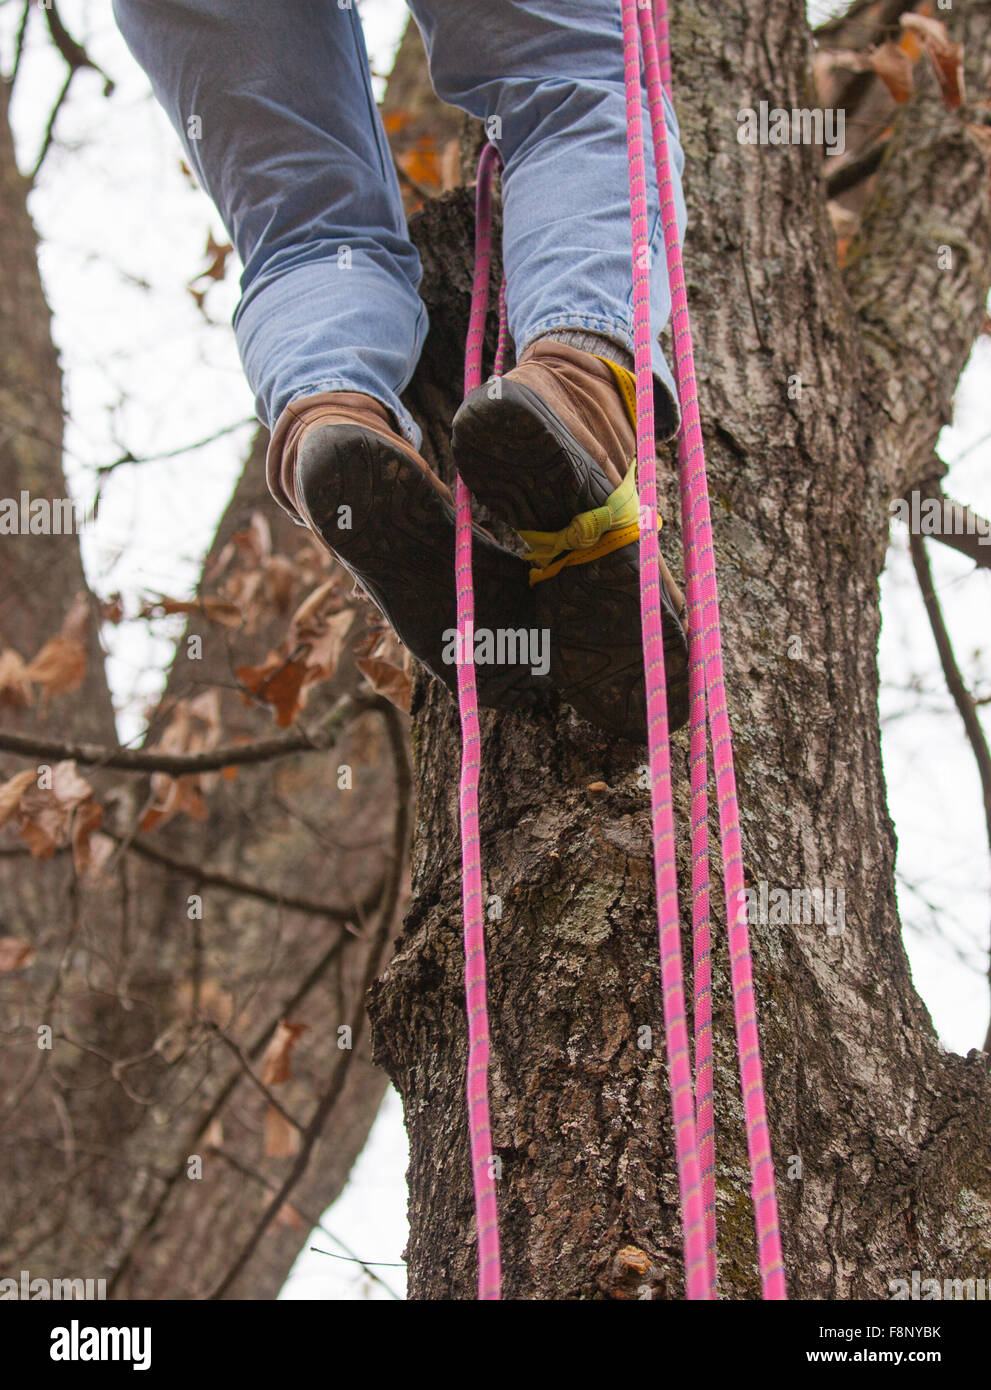 Man using a dynamic rope to climb a tree - Stock Image